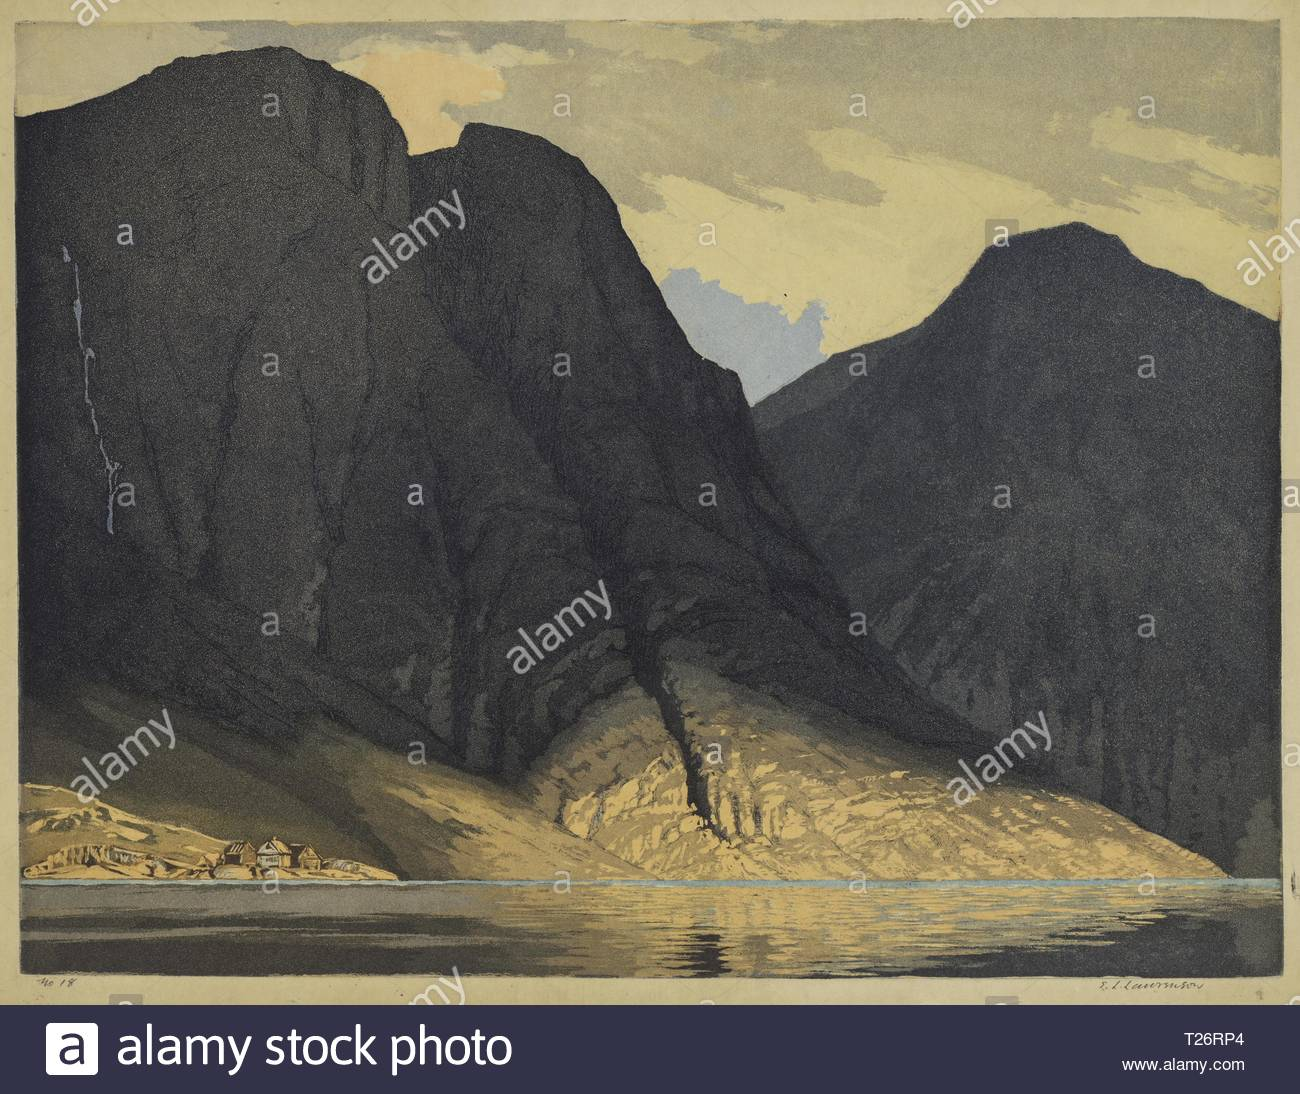 [Mountain View with Water]. Edward Louis Laurenson (British, 1868-1940). Color aquatint with roulette. - Stock Image